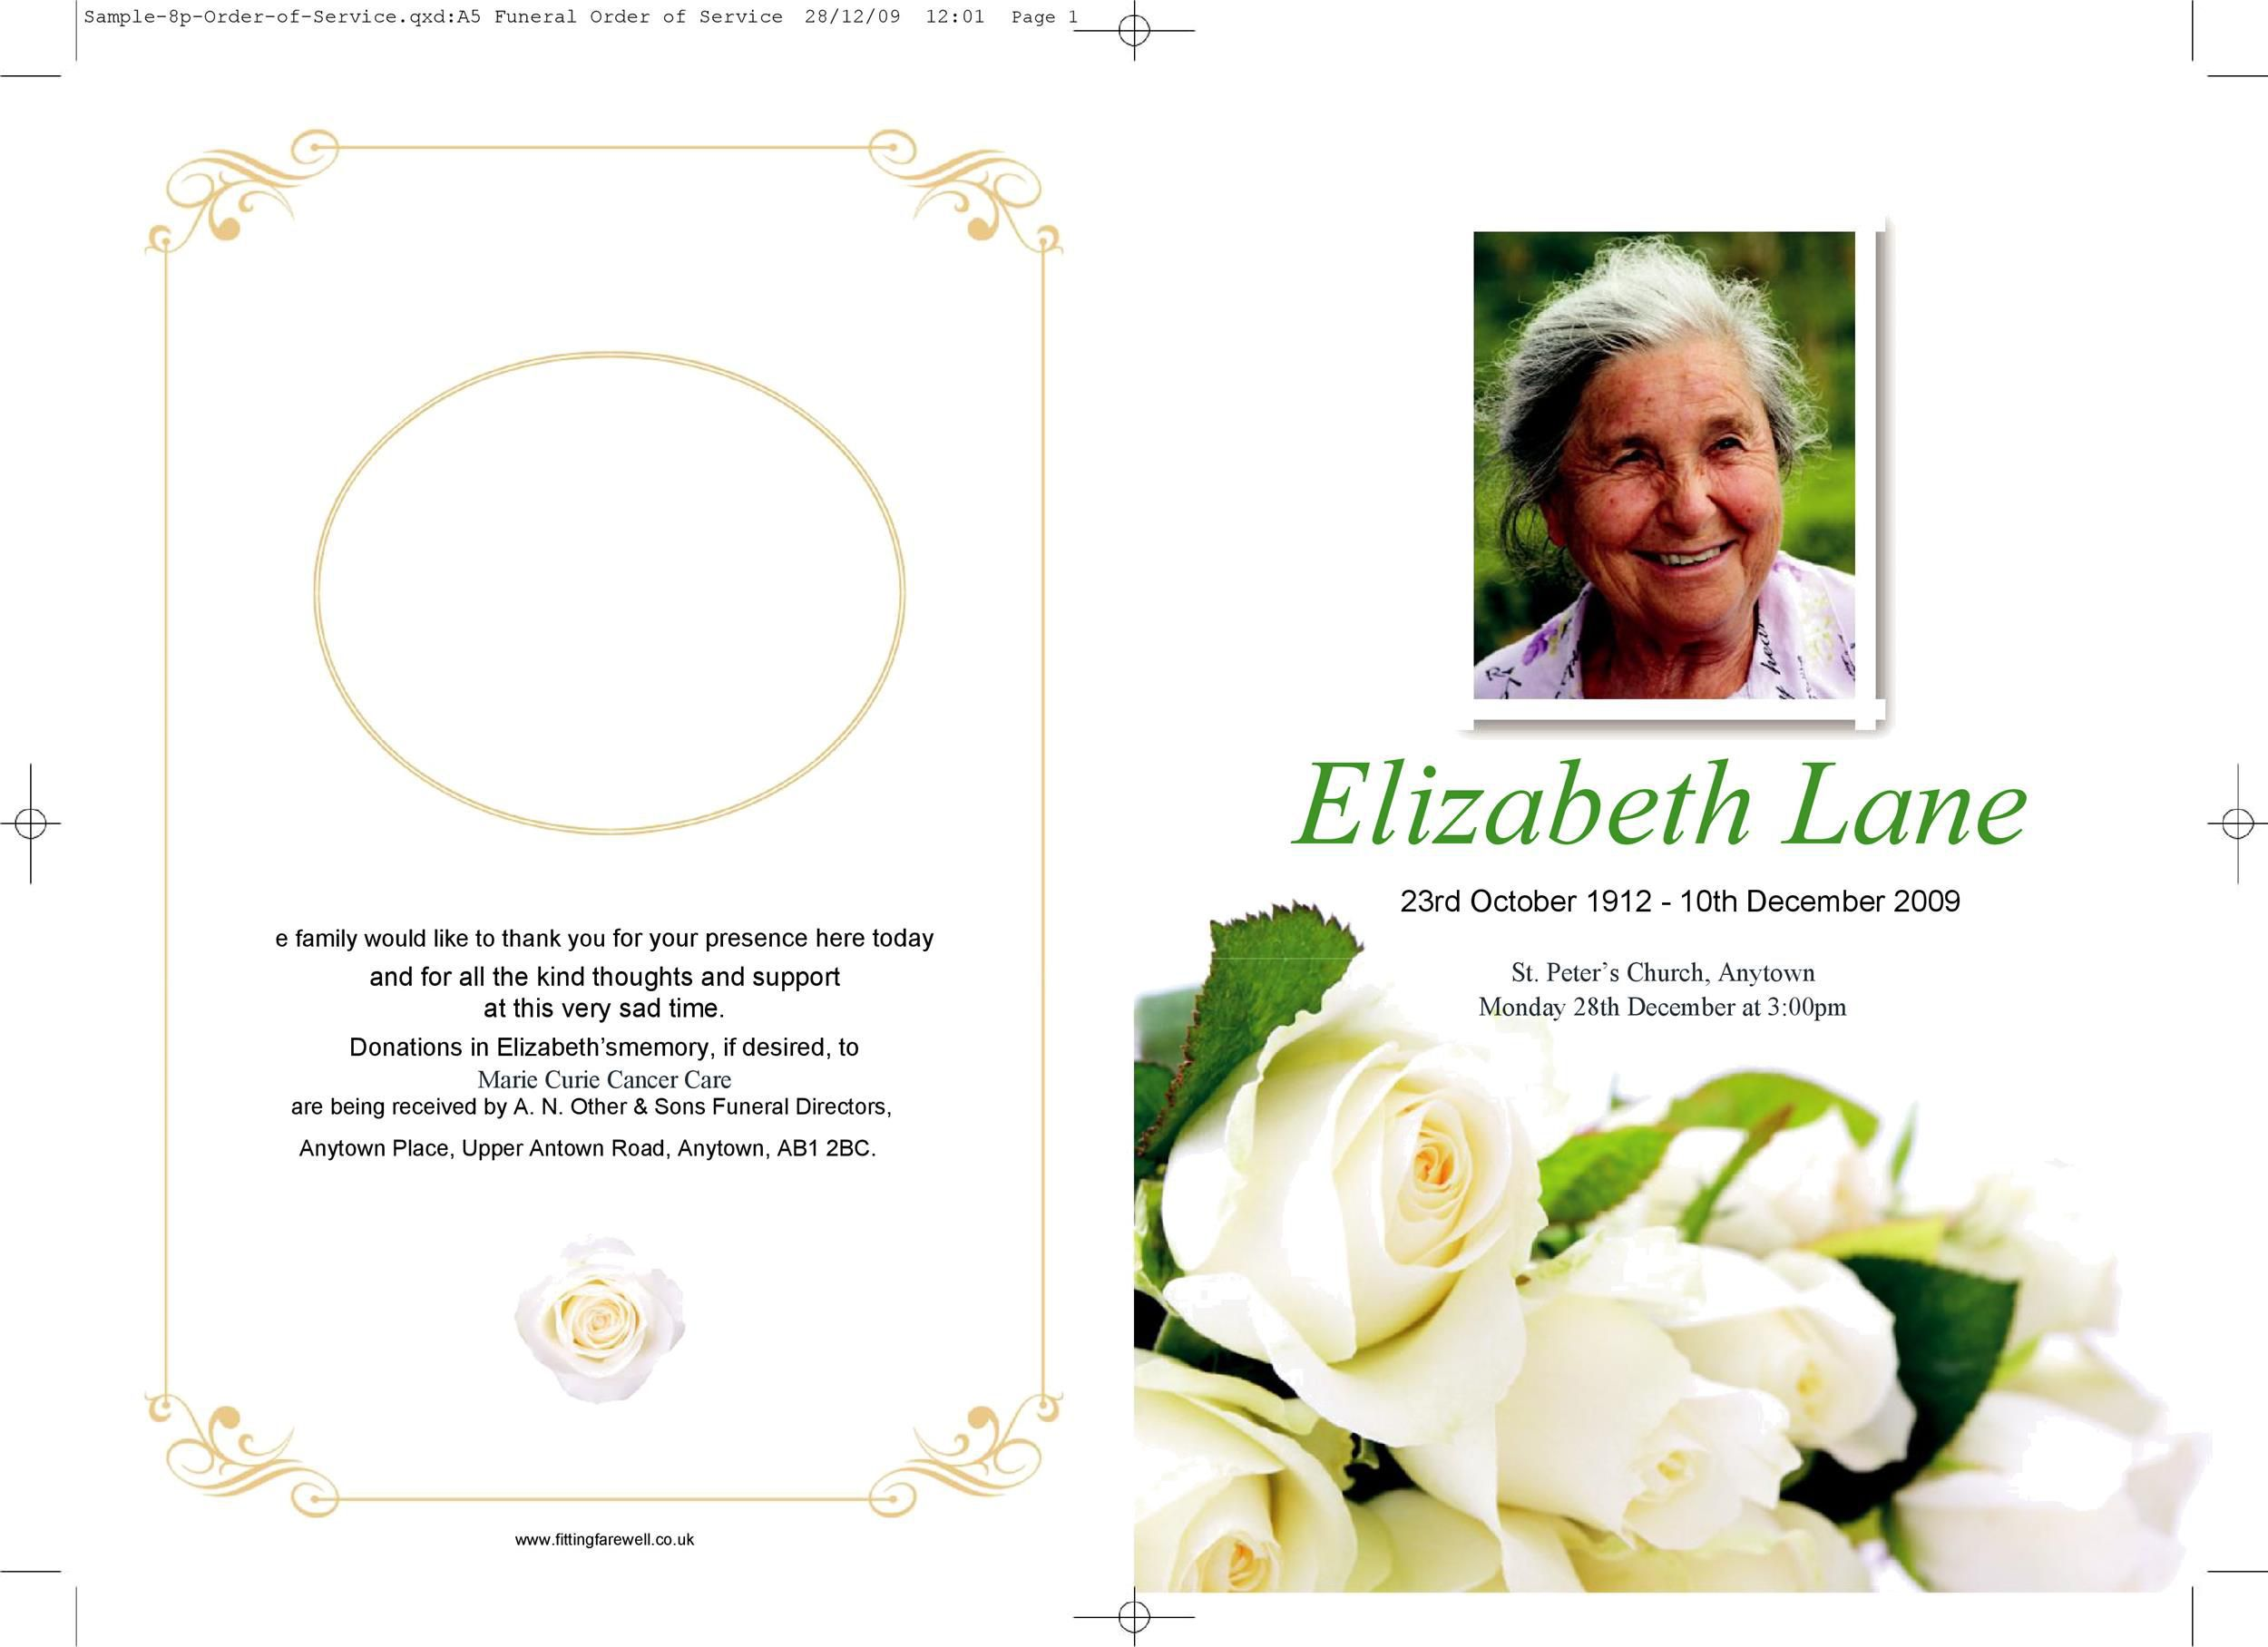 009 Remarkable Free Download Template For Funeral Program High Resolution Full